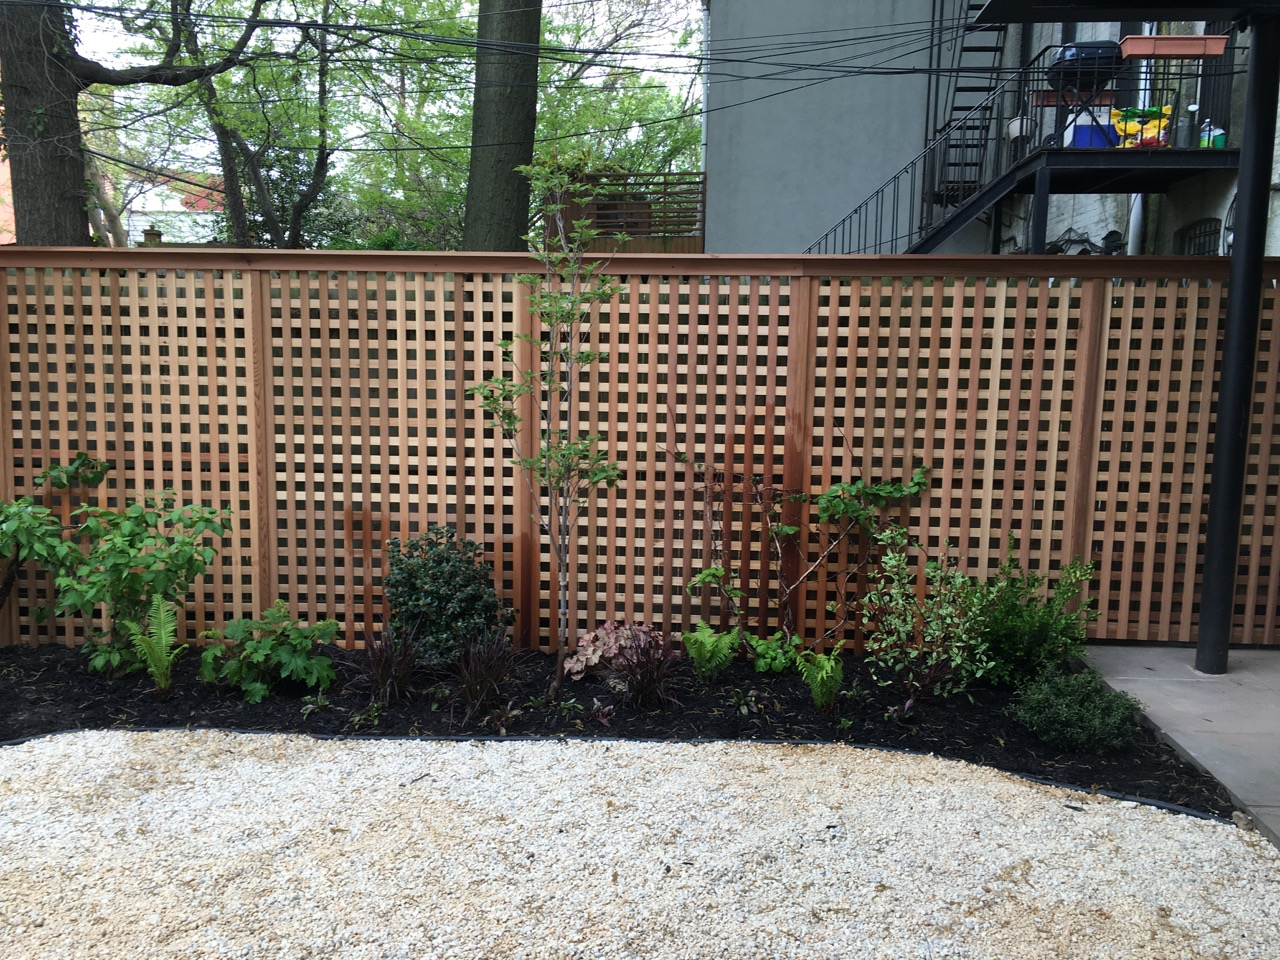 New fence allows air flow while maintaining privacy